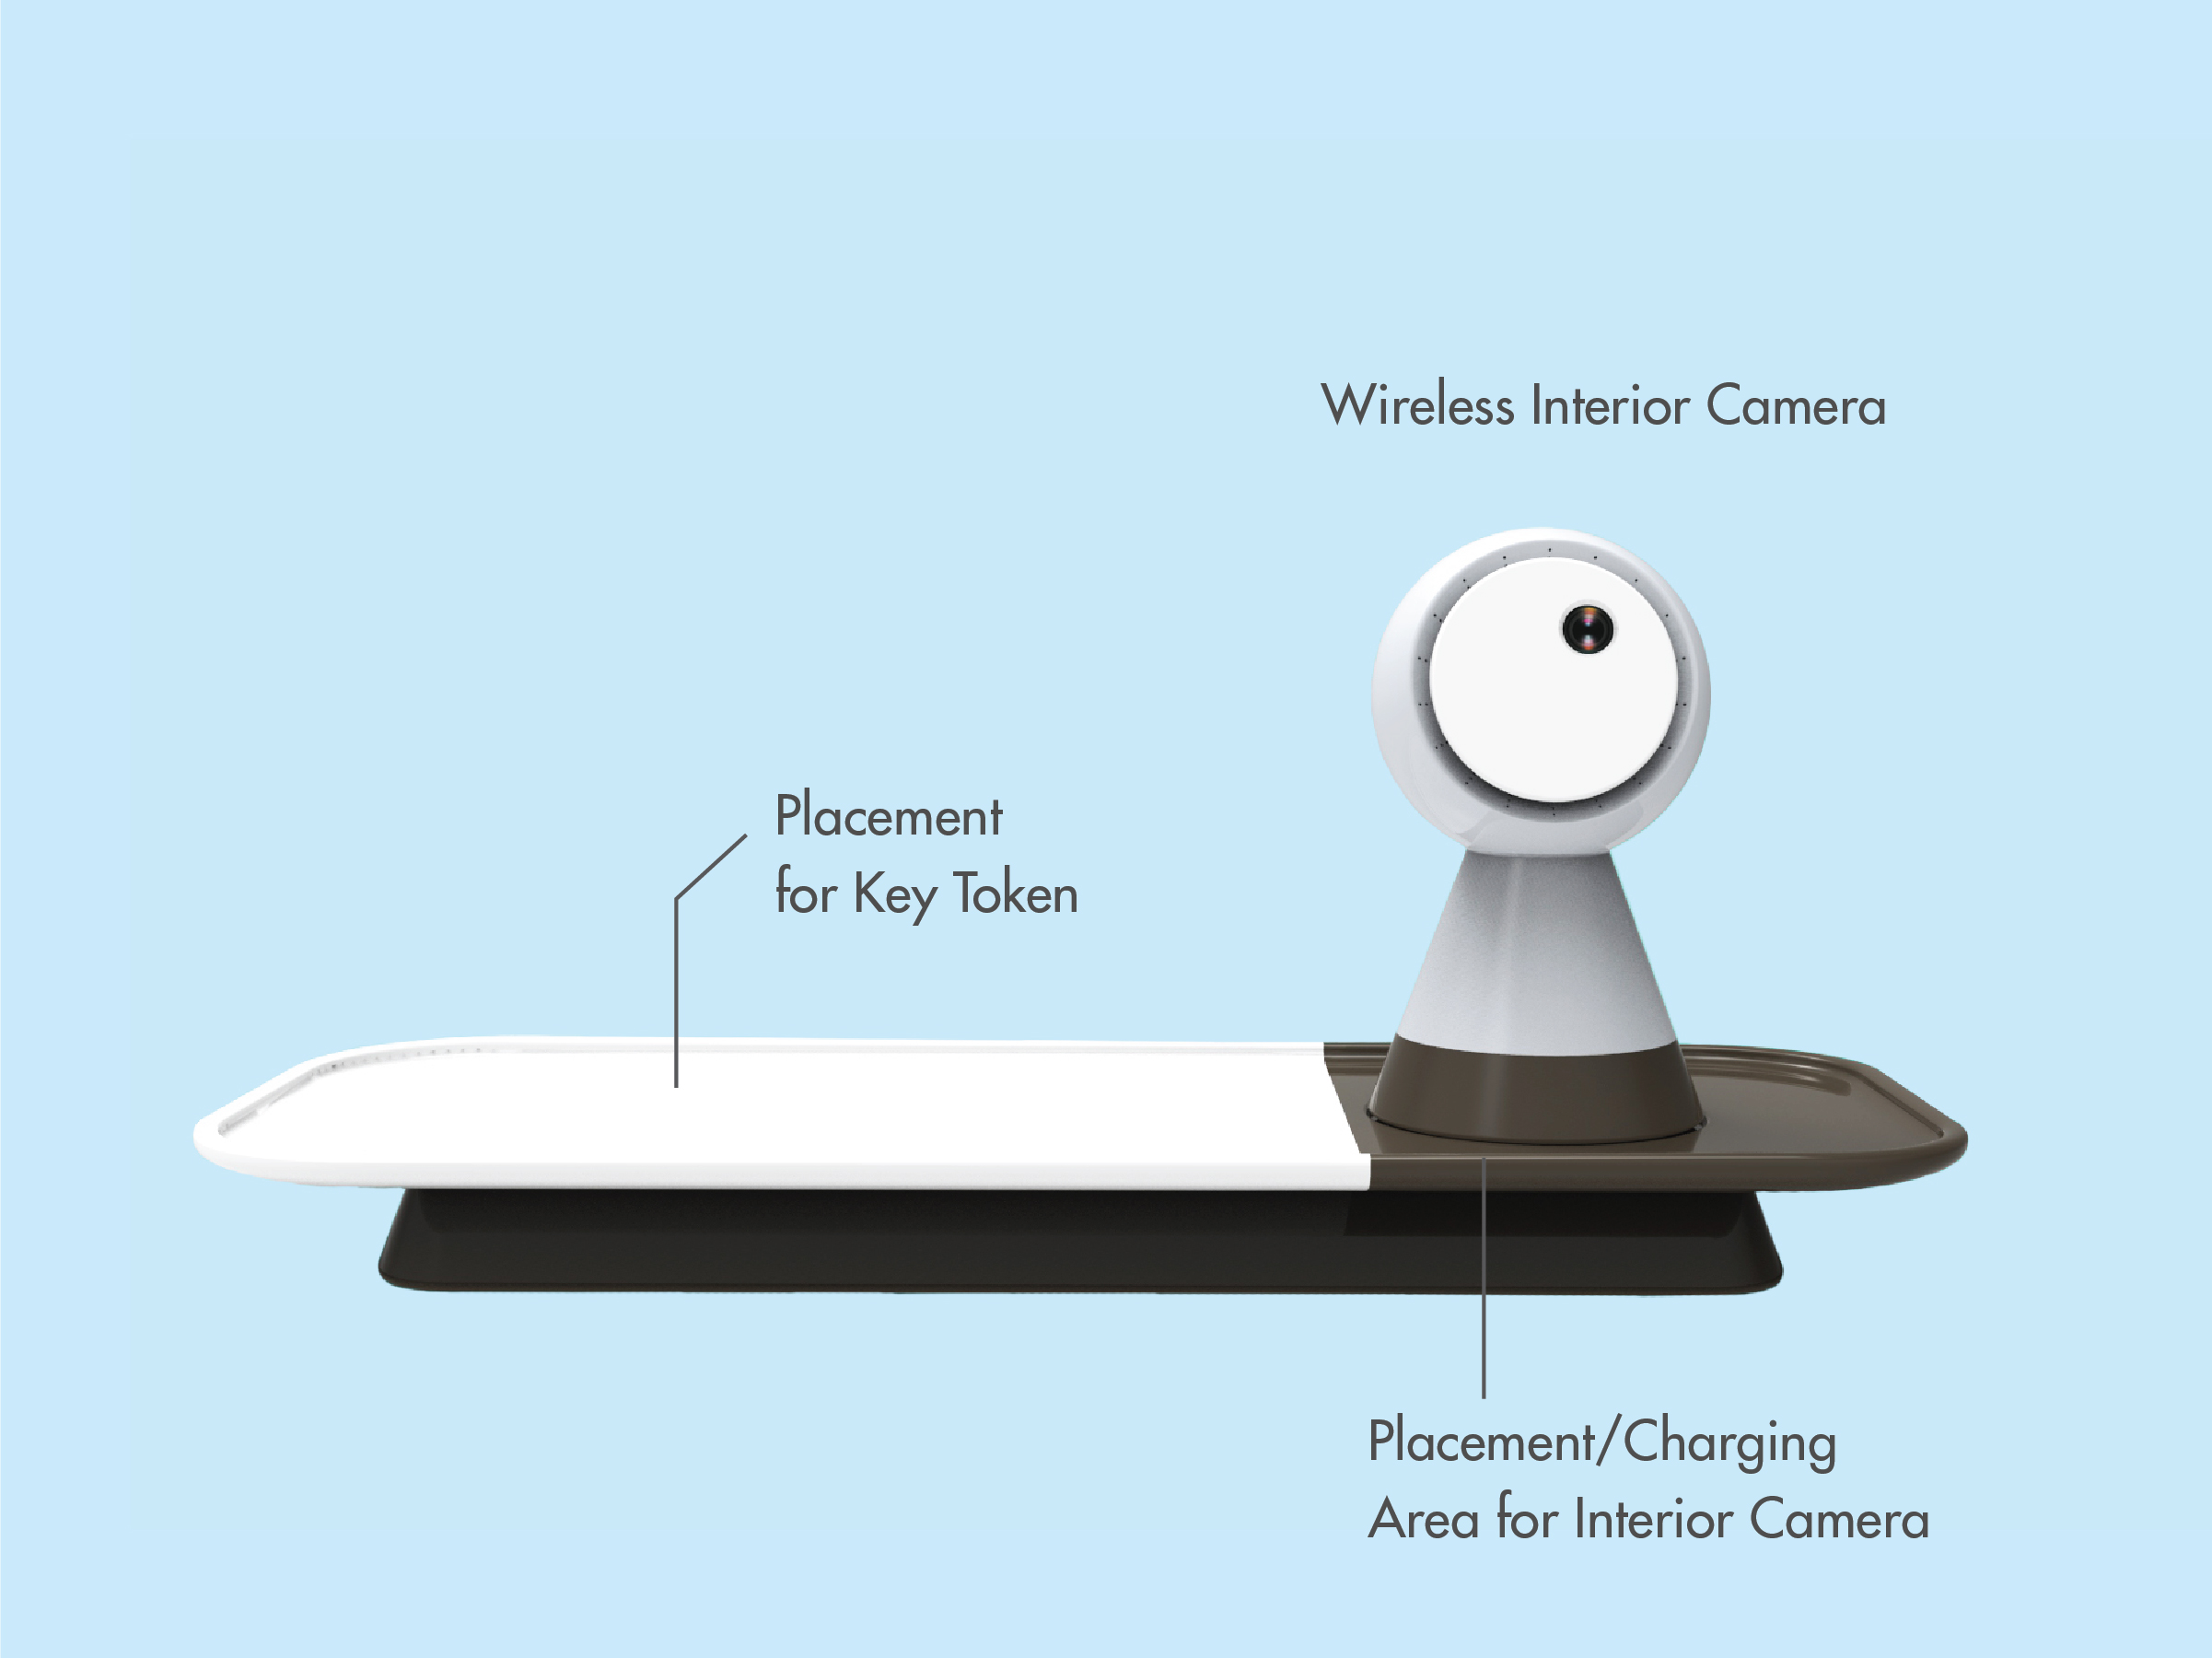 The Smart Tray is the central hub of this system.It acknowledges the presence of the user via placement of the key token on the tray. This eliminates the need for troublesome passwords and codes that other system need. The Interior Camera can be placed anywhere in the house to monitor your space. -